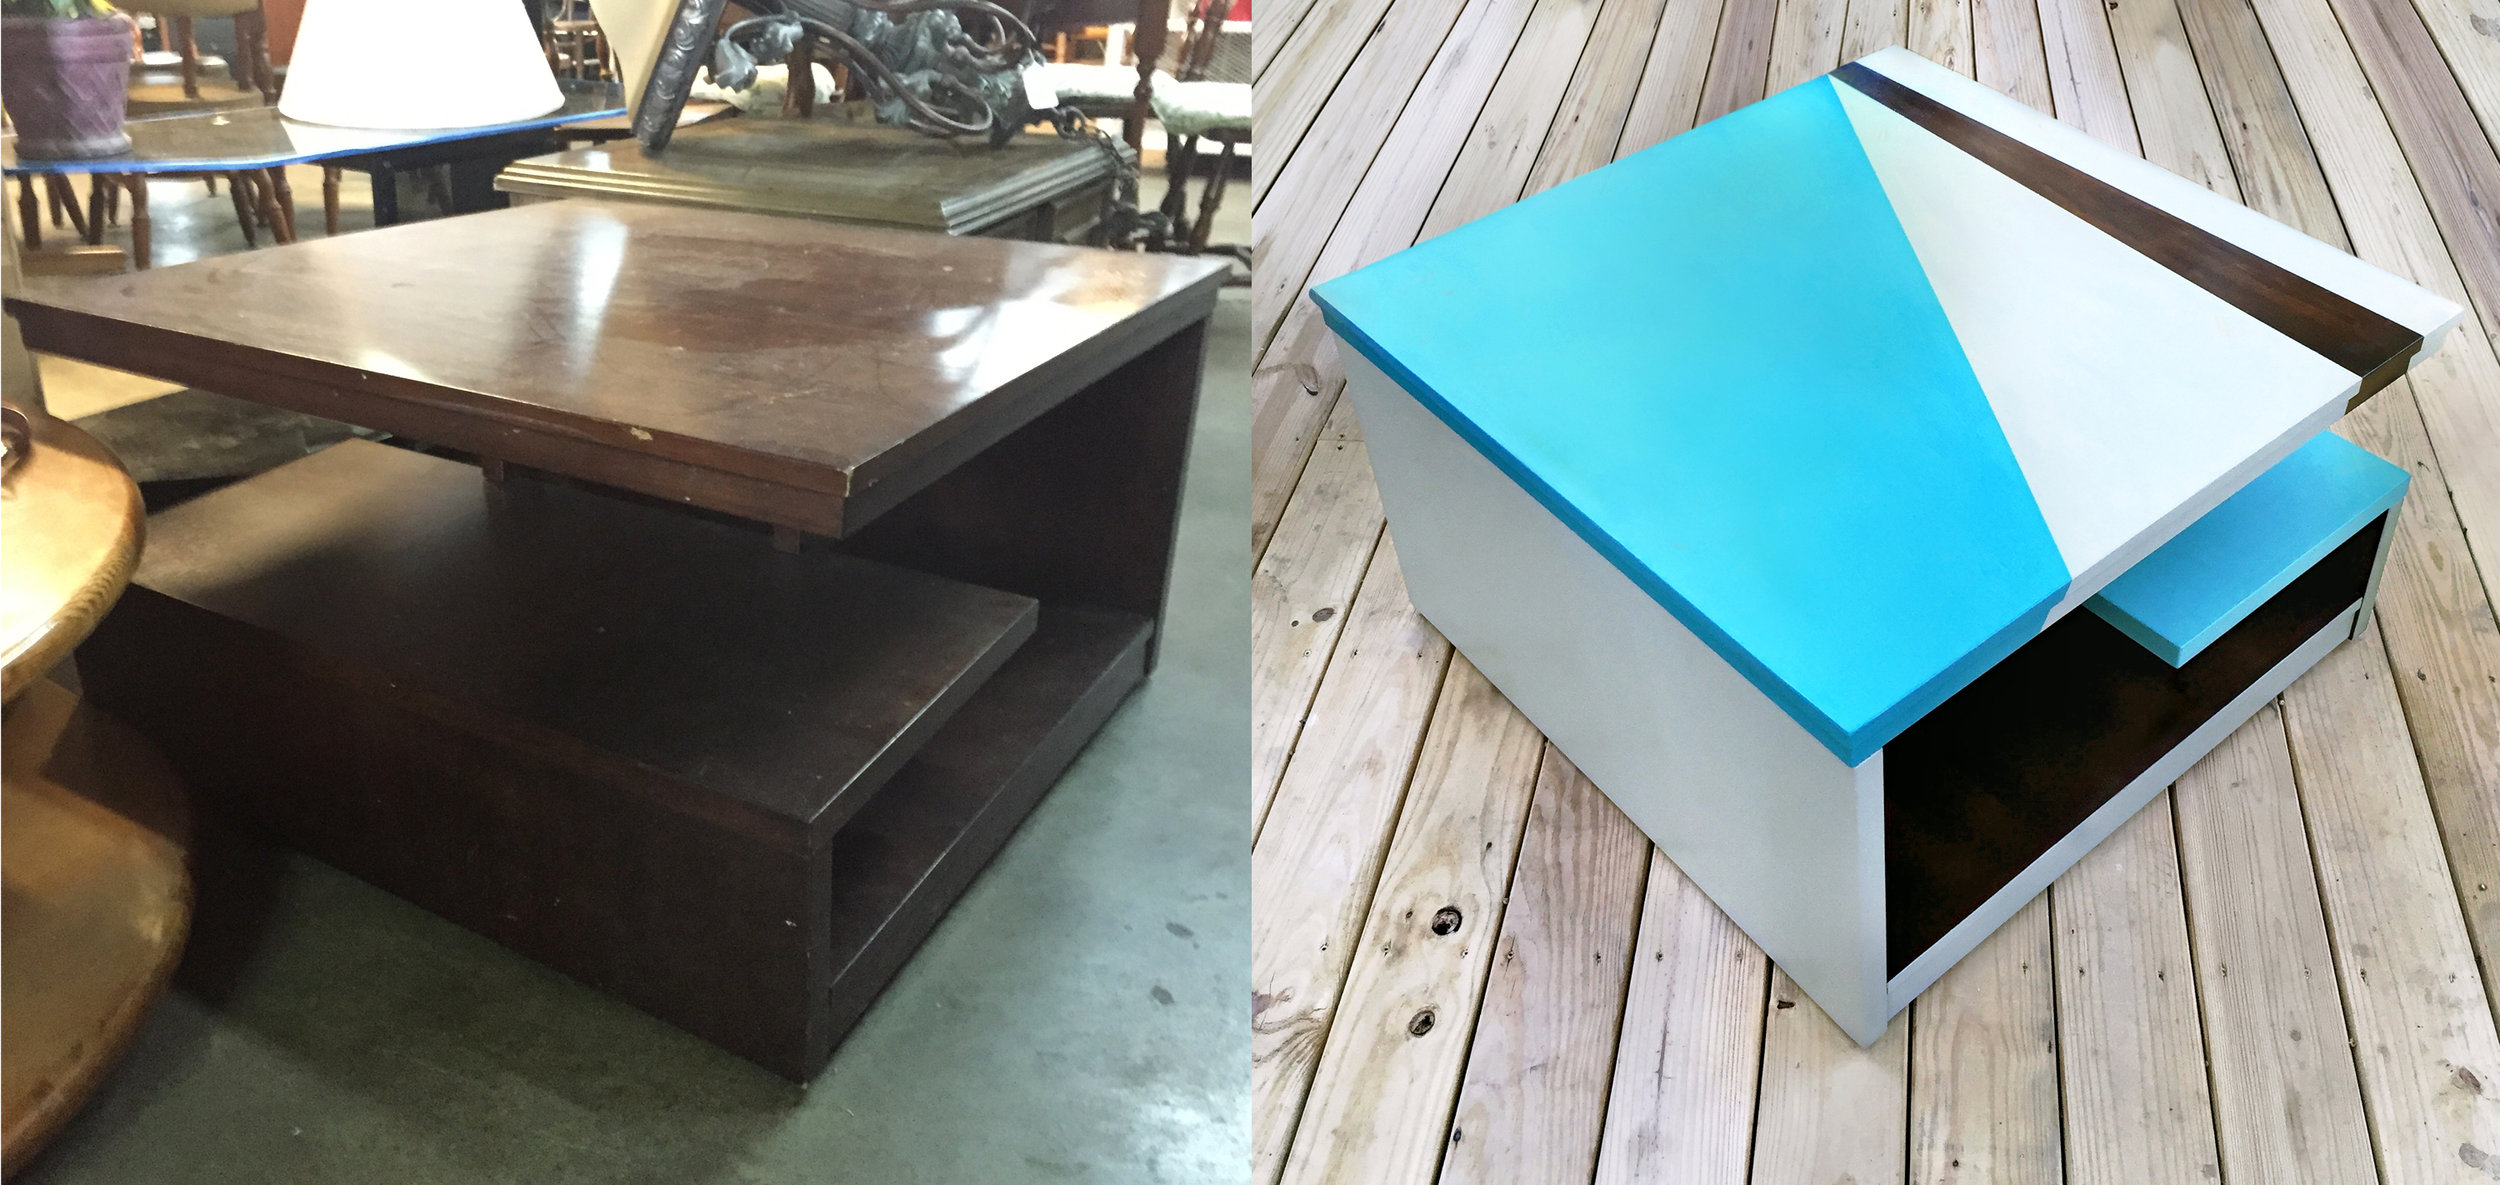 crimson + oak designs | square modern coffee table BEFORE & AFTER.jpg